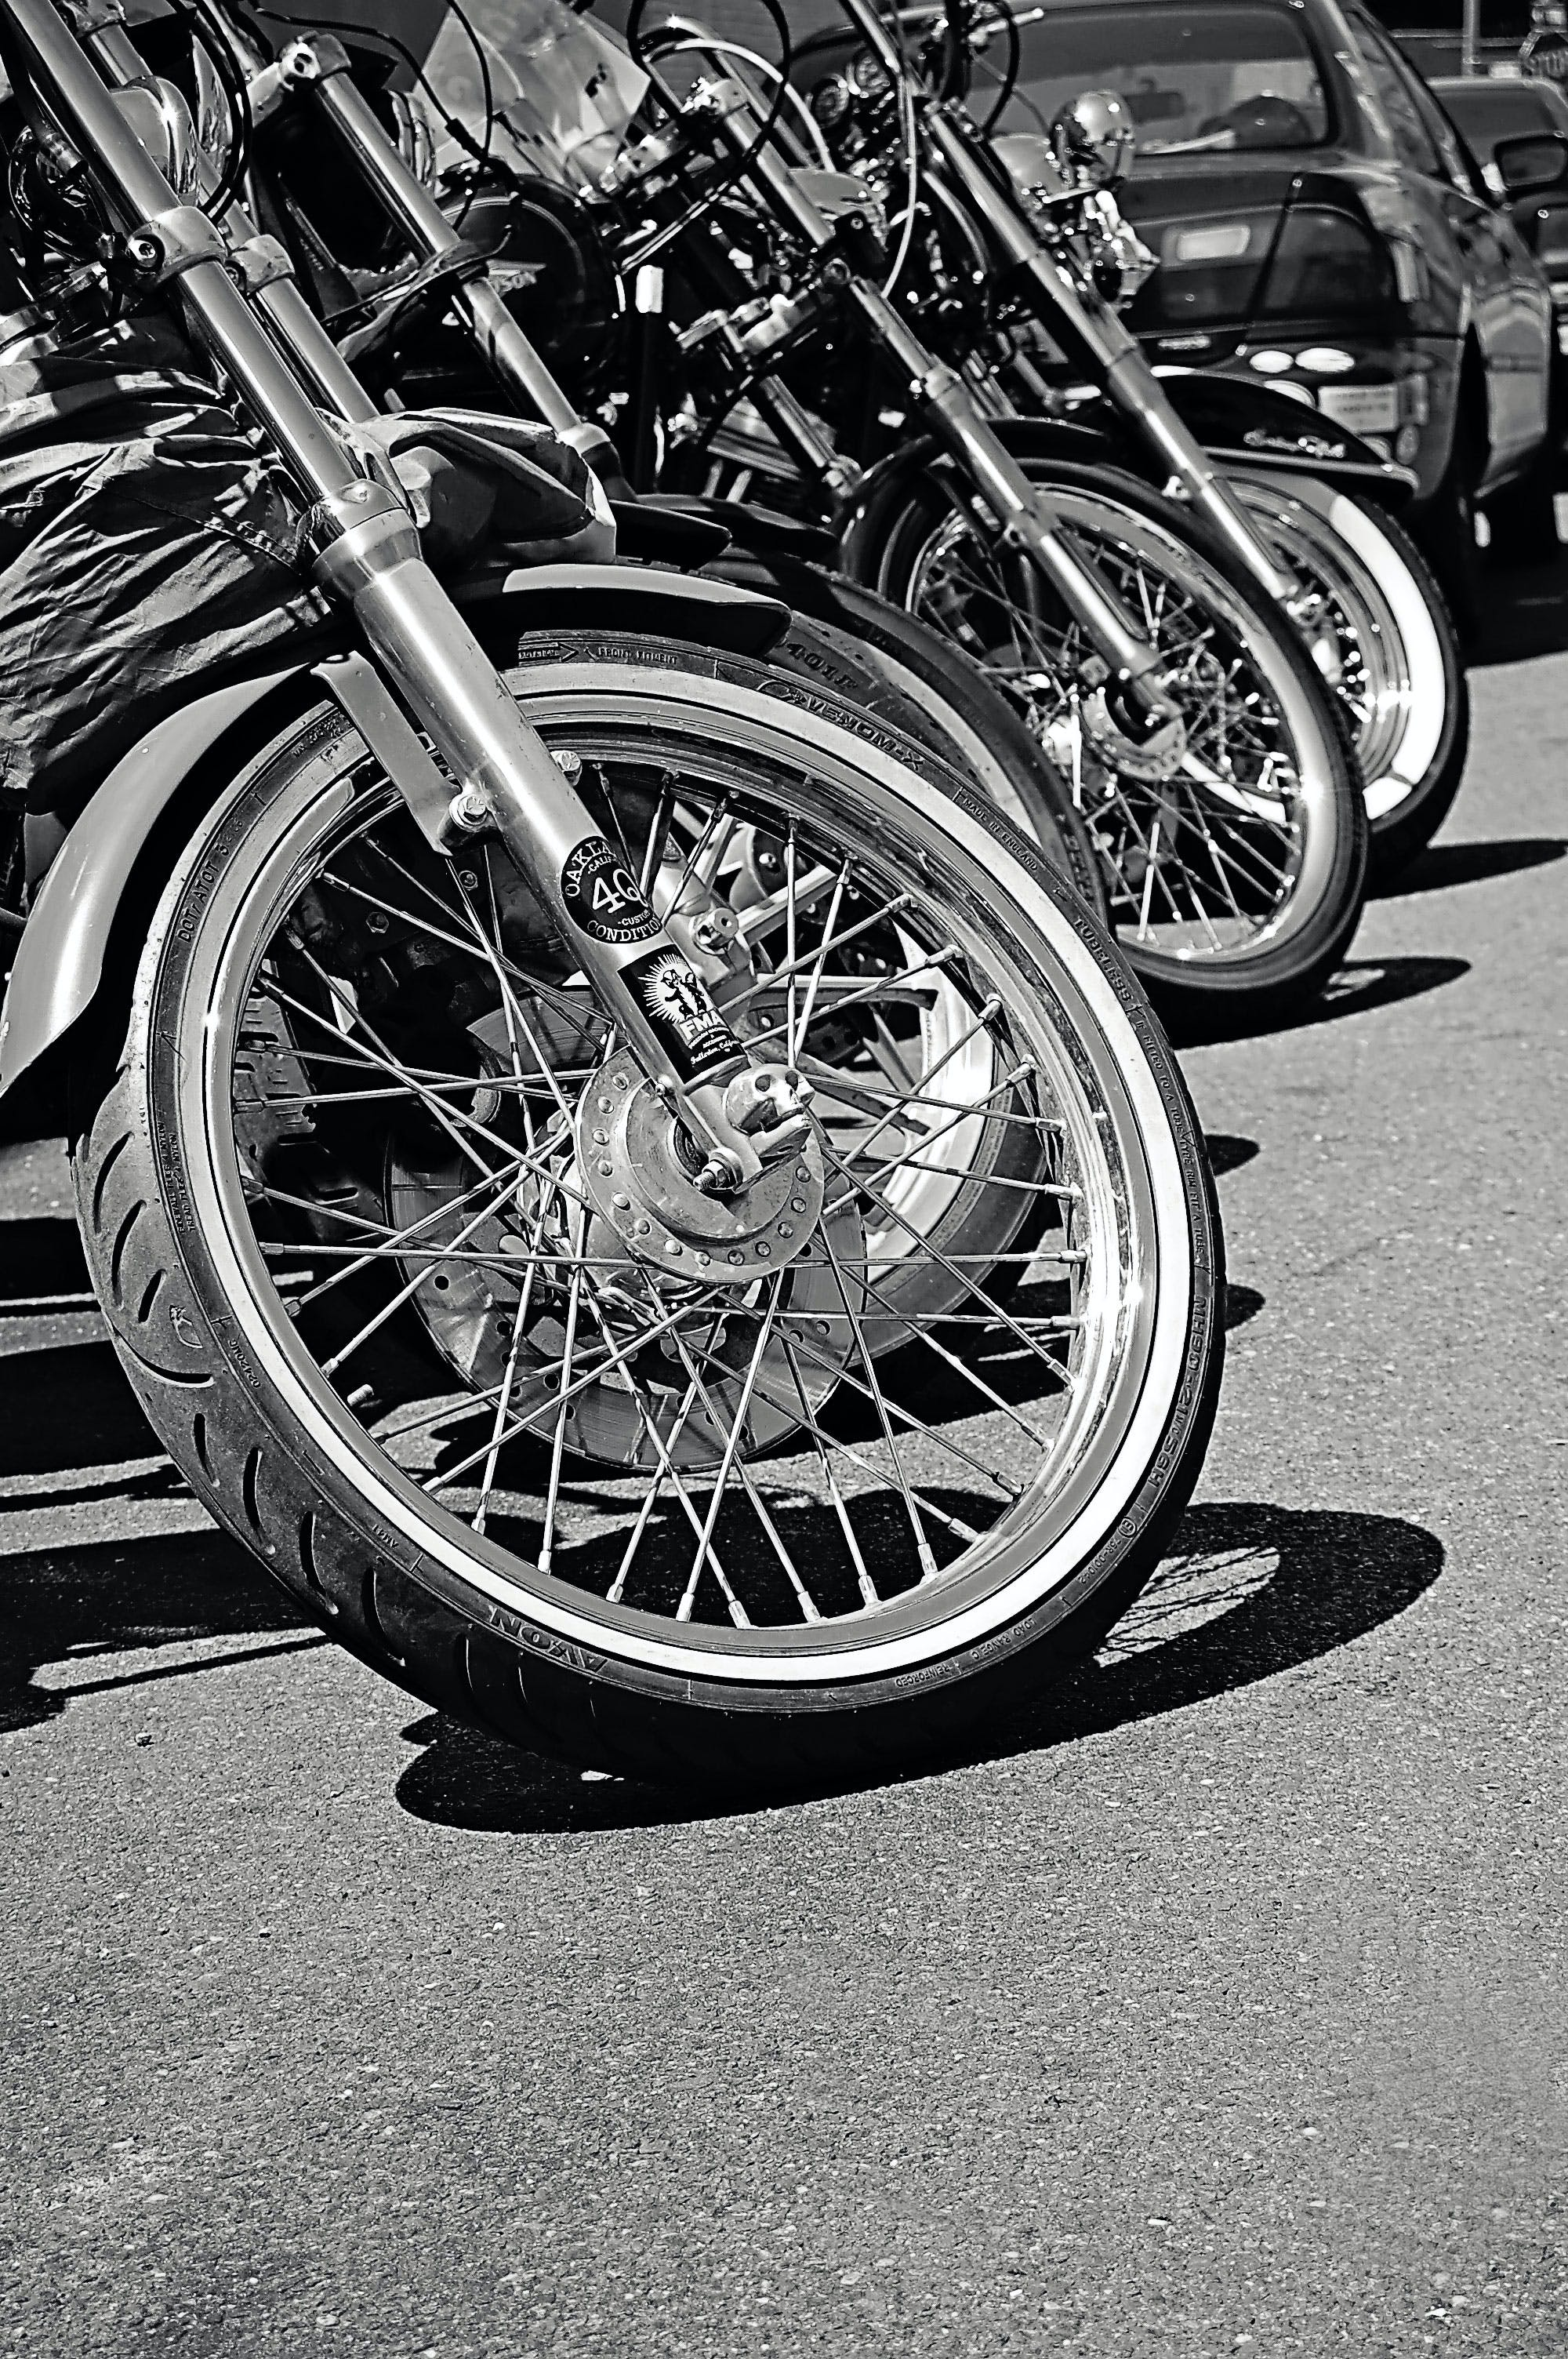 Grayscale Photo of Parked Motorcycle